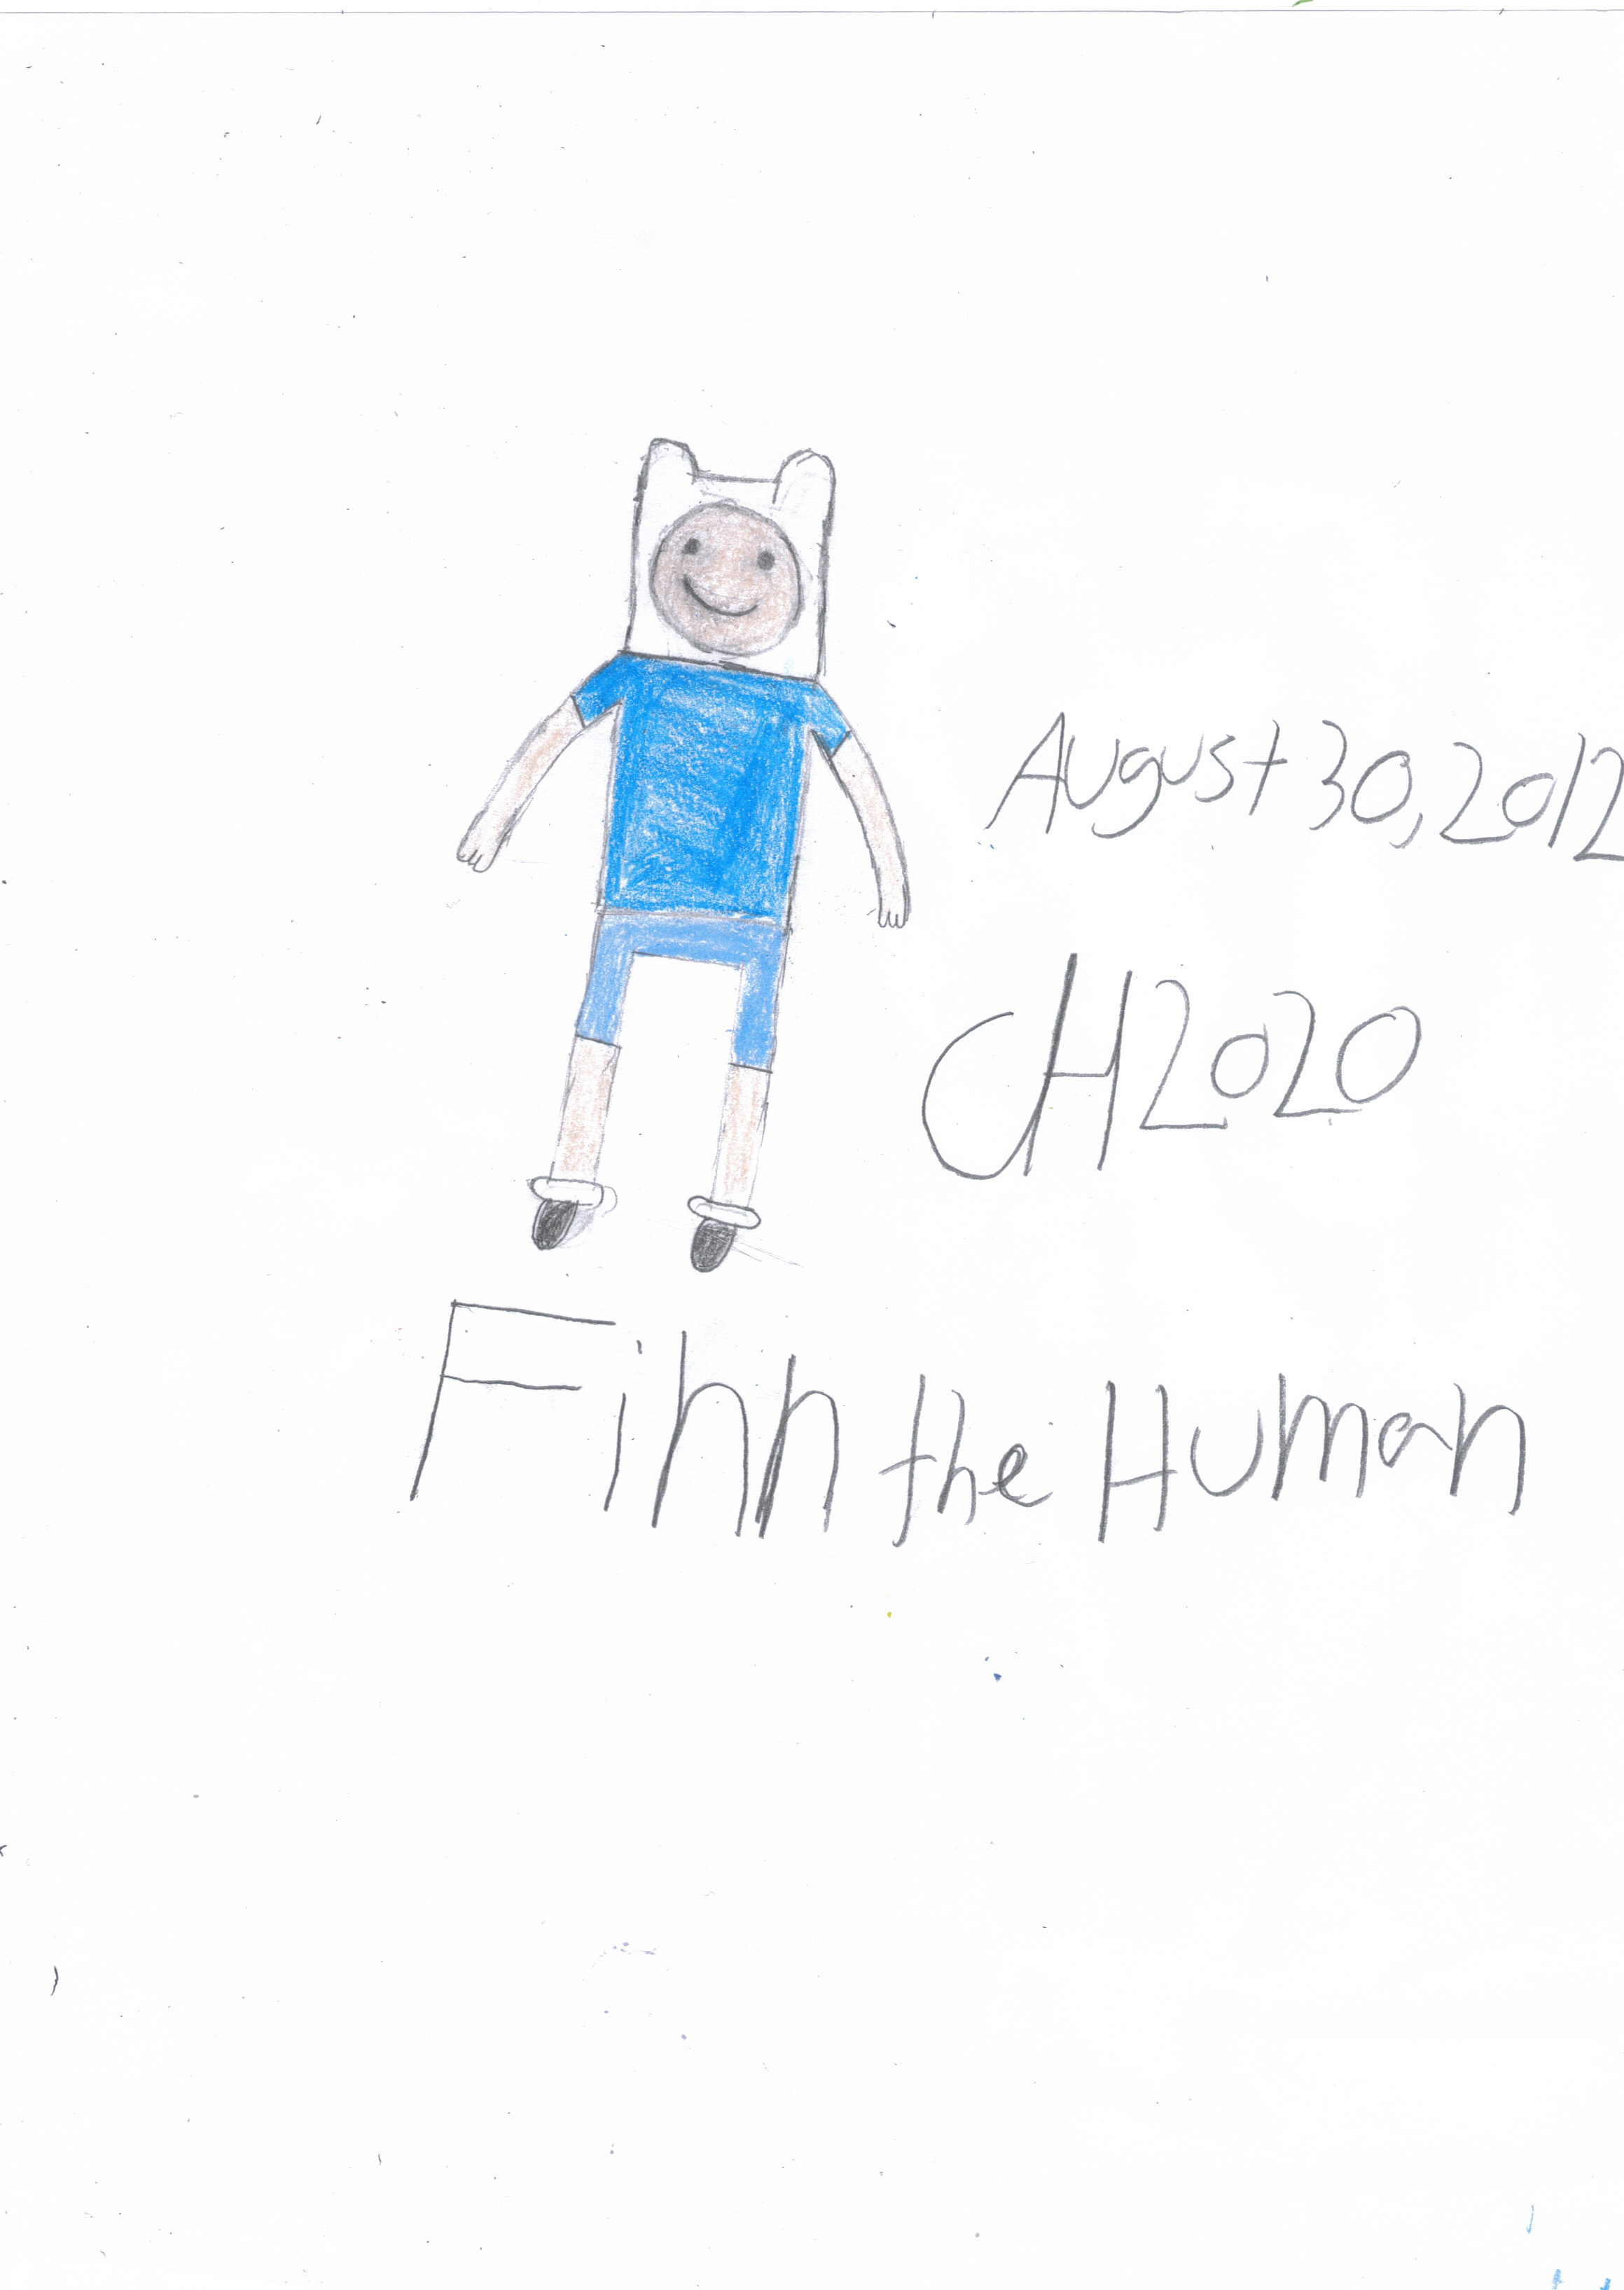 Finn the human August 30,2012 by Chernandez2020